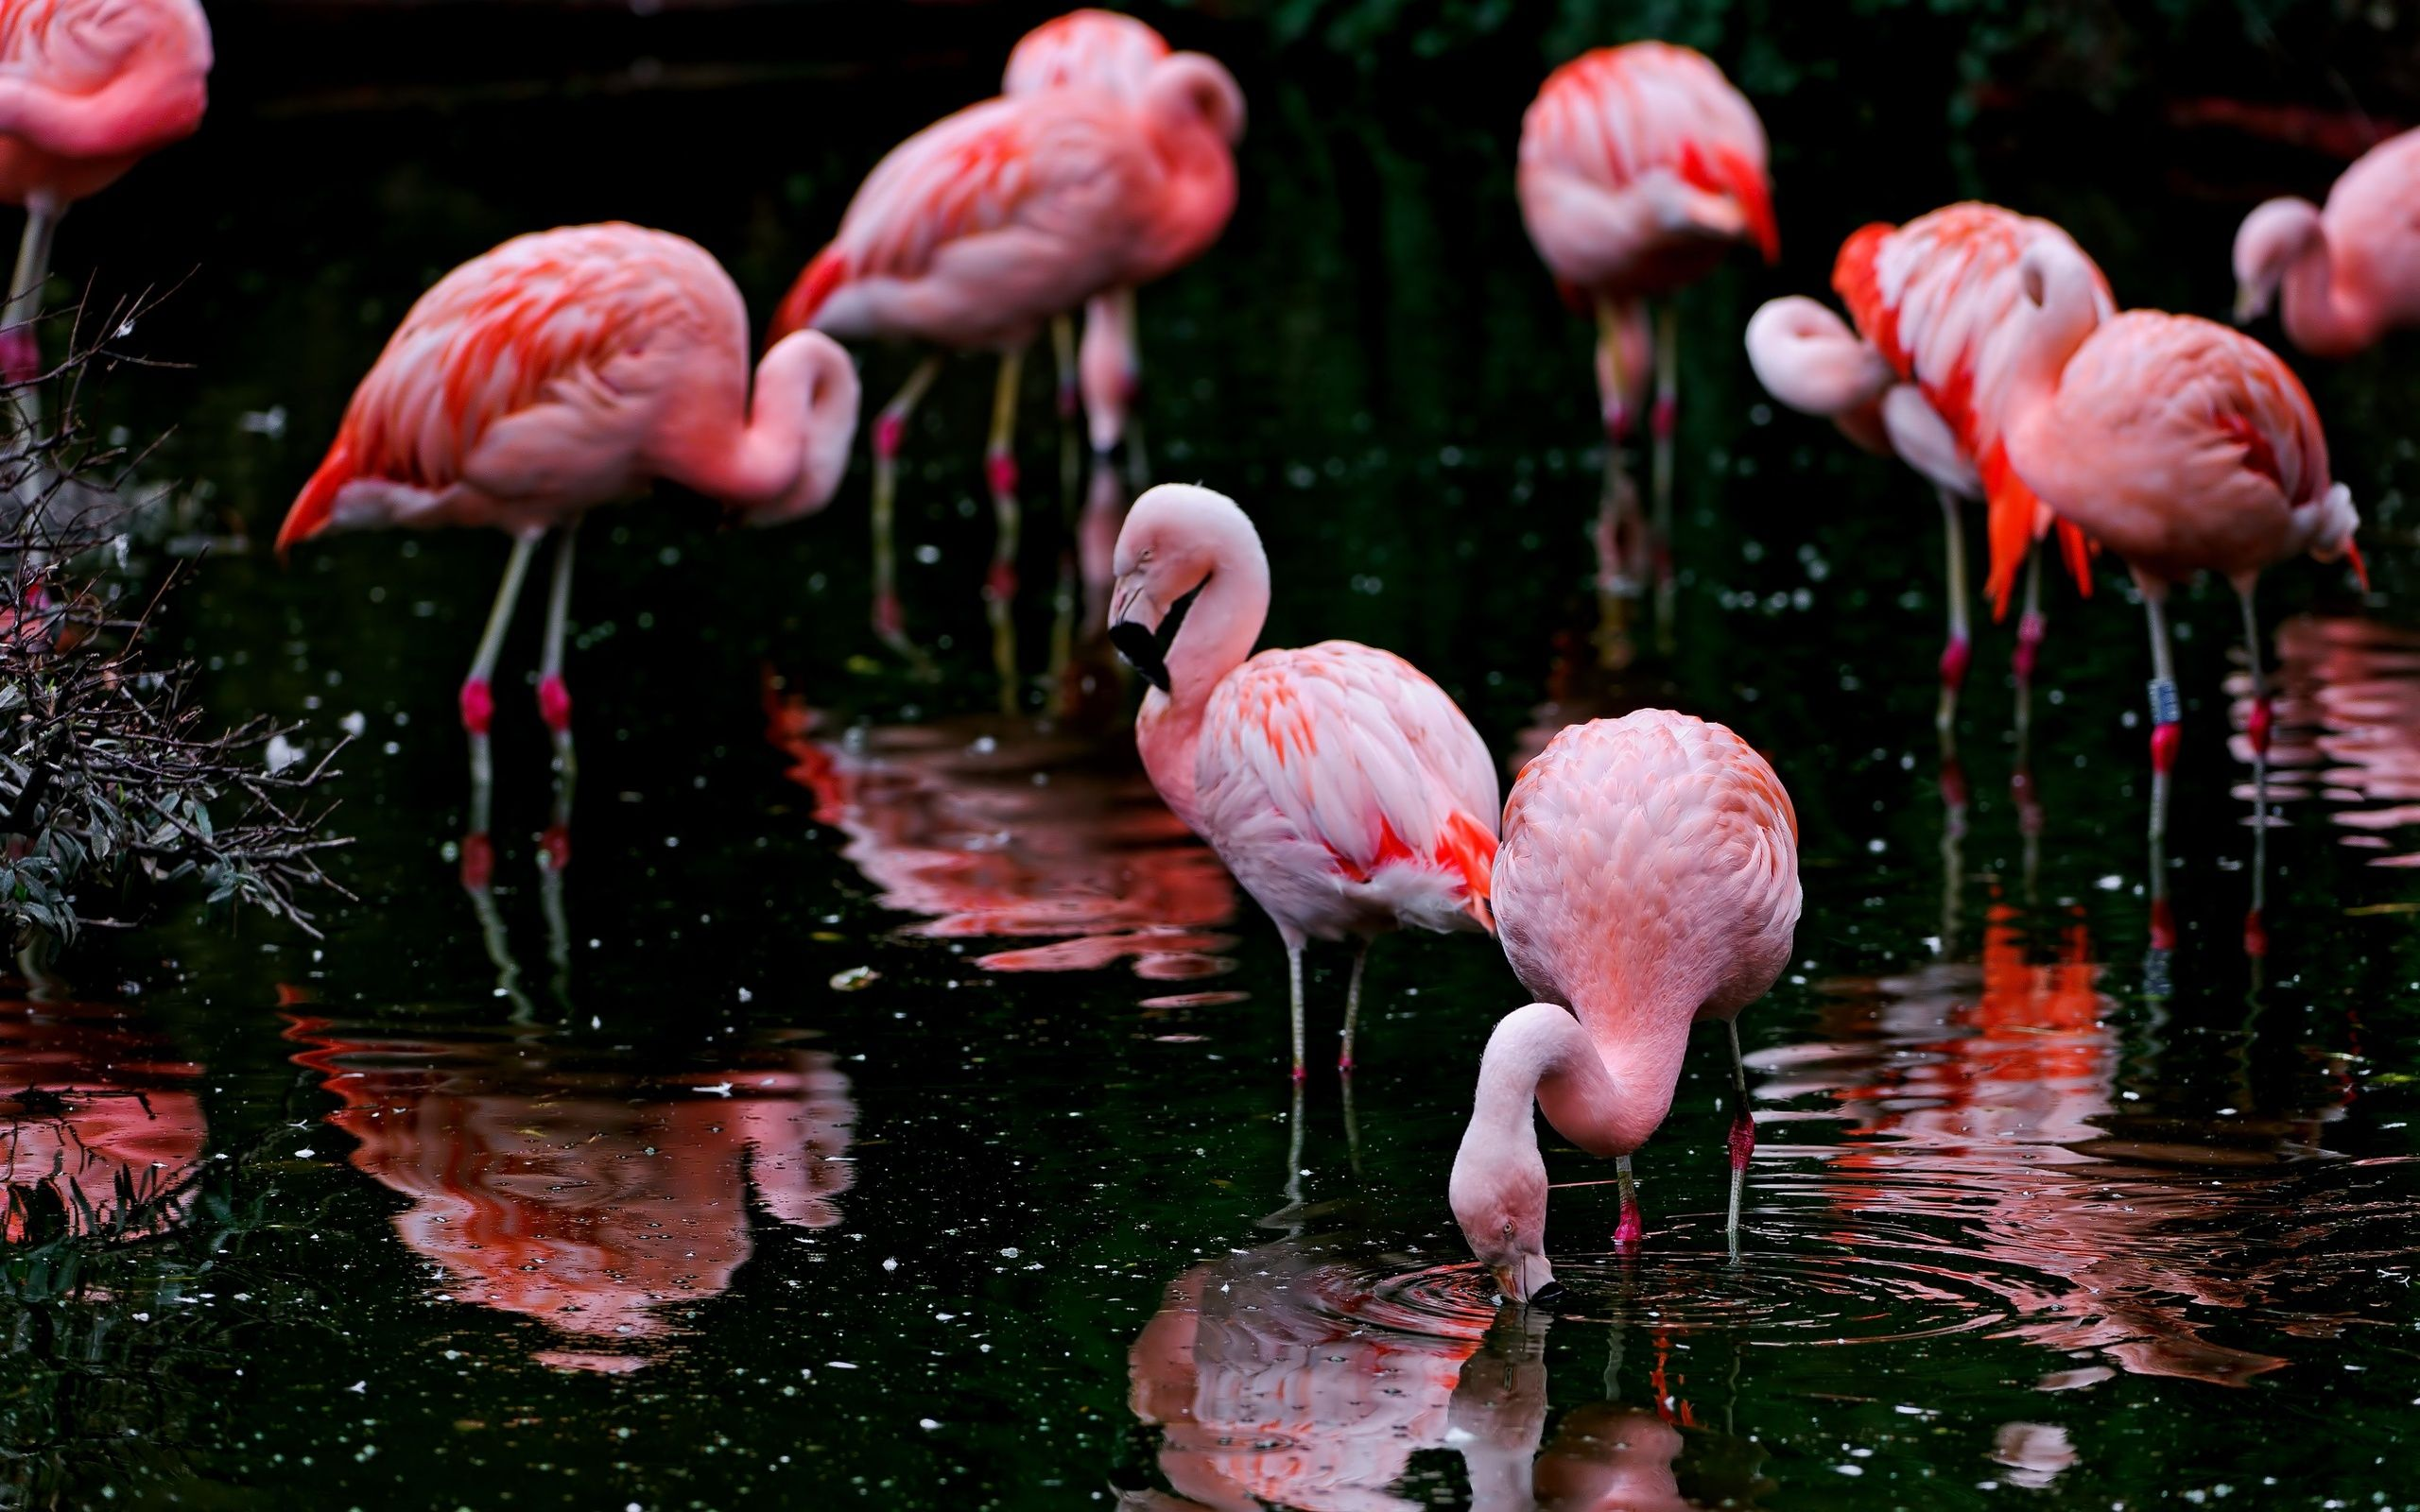 Flamingo HD background wallpaper Animal Backgrounds